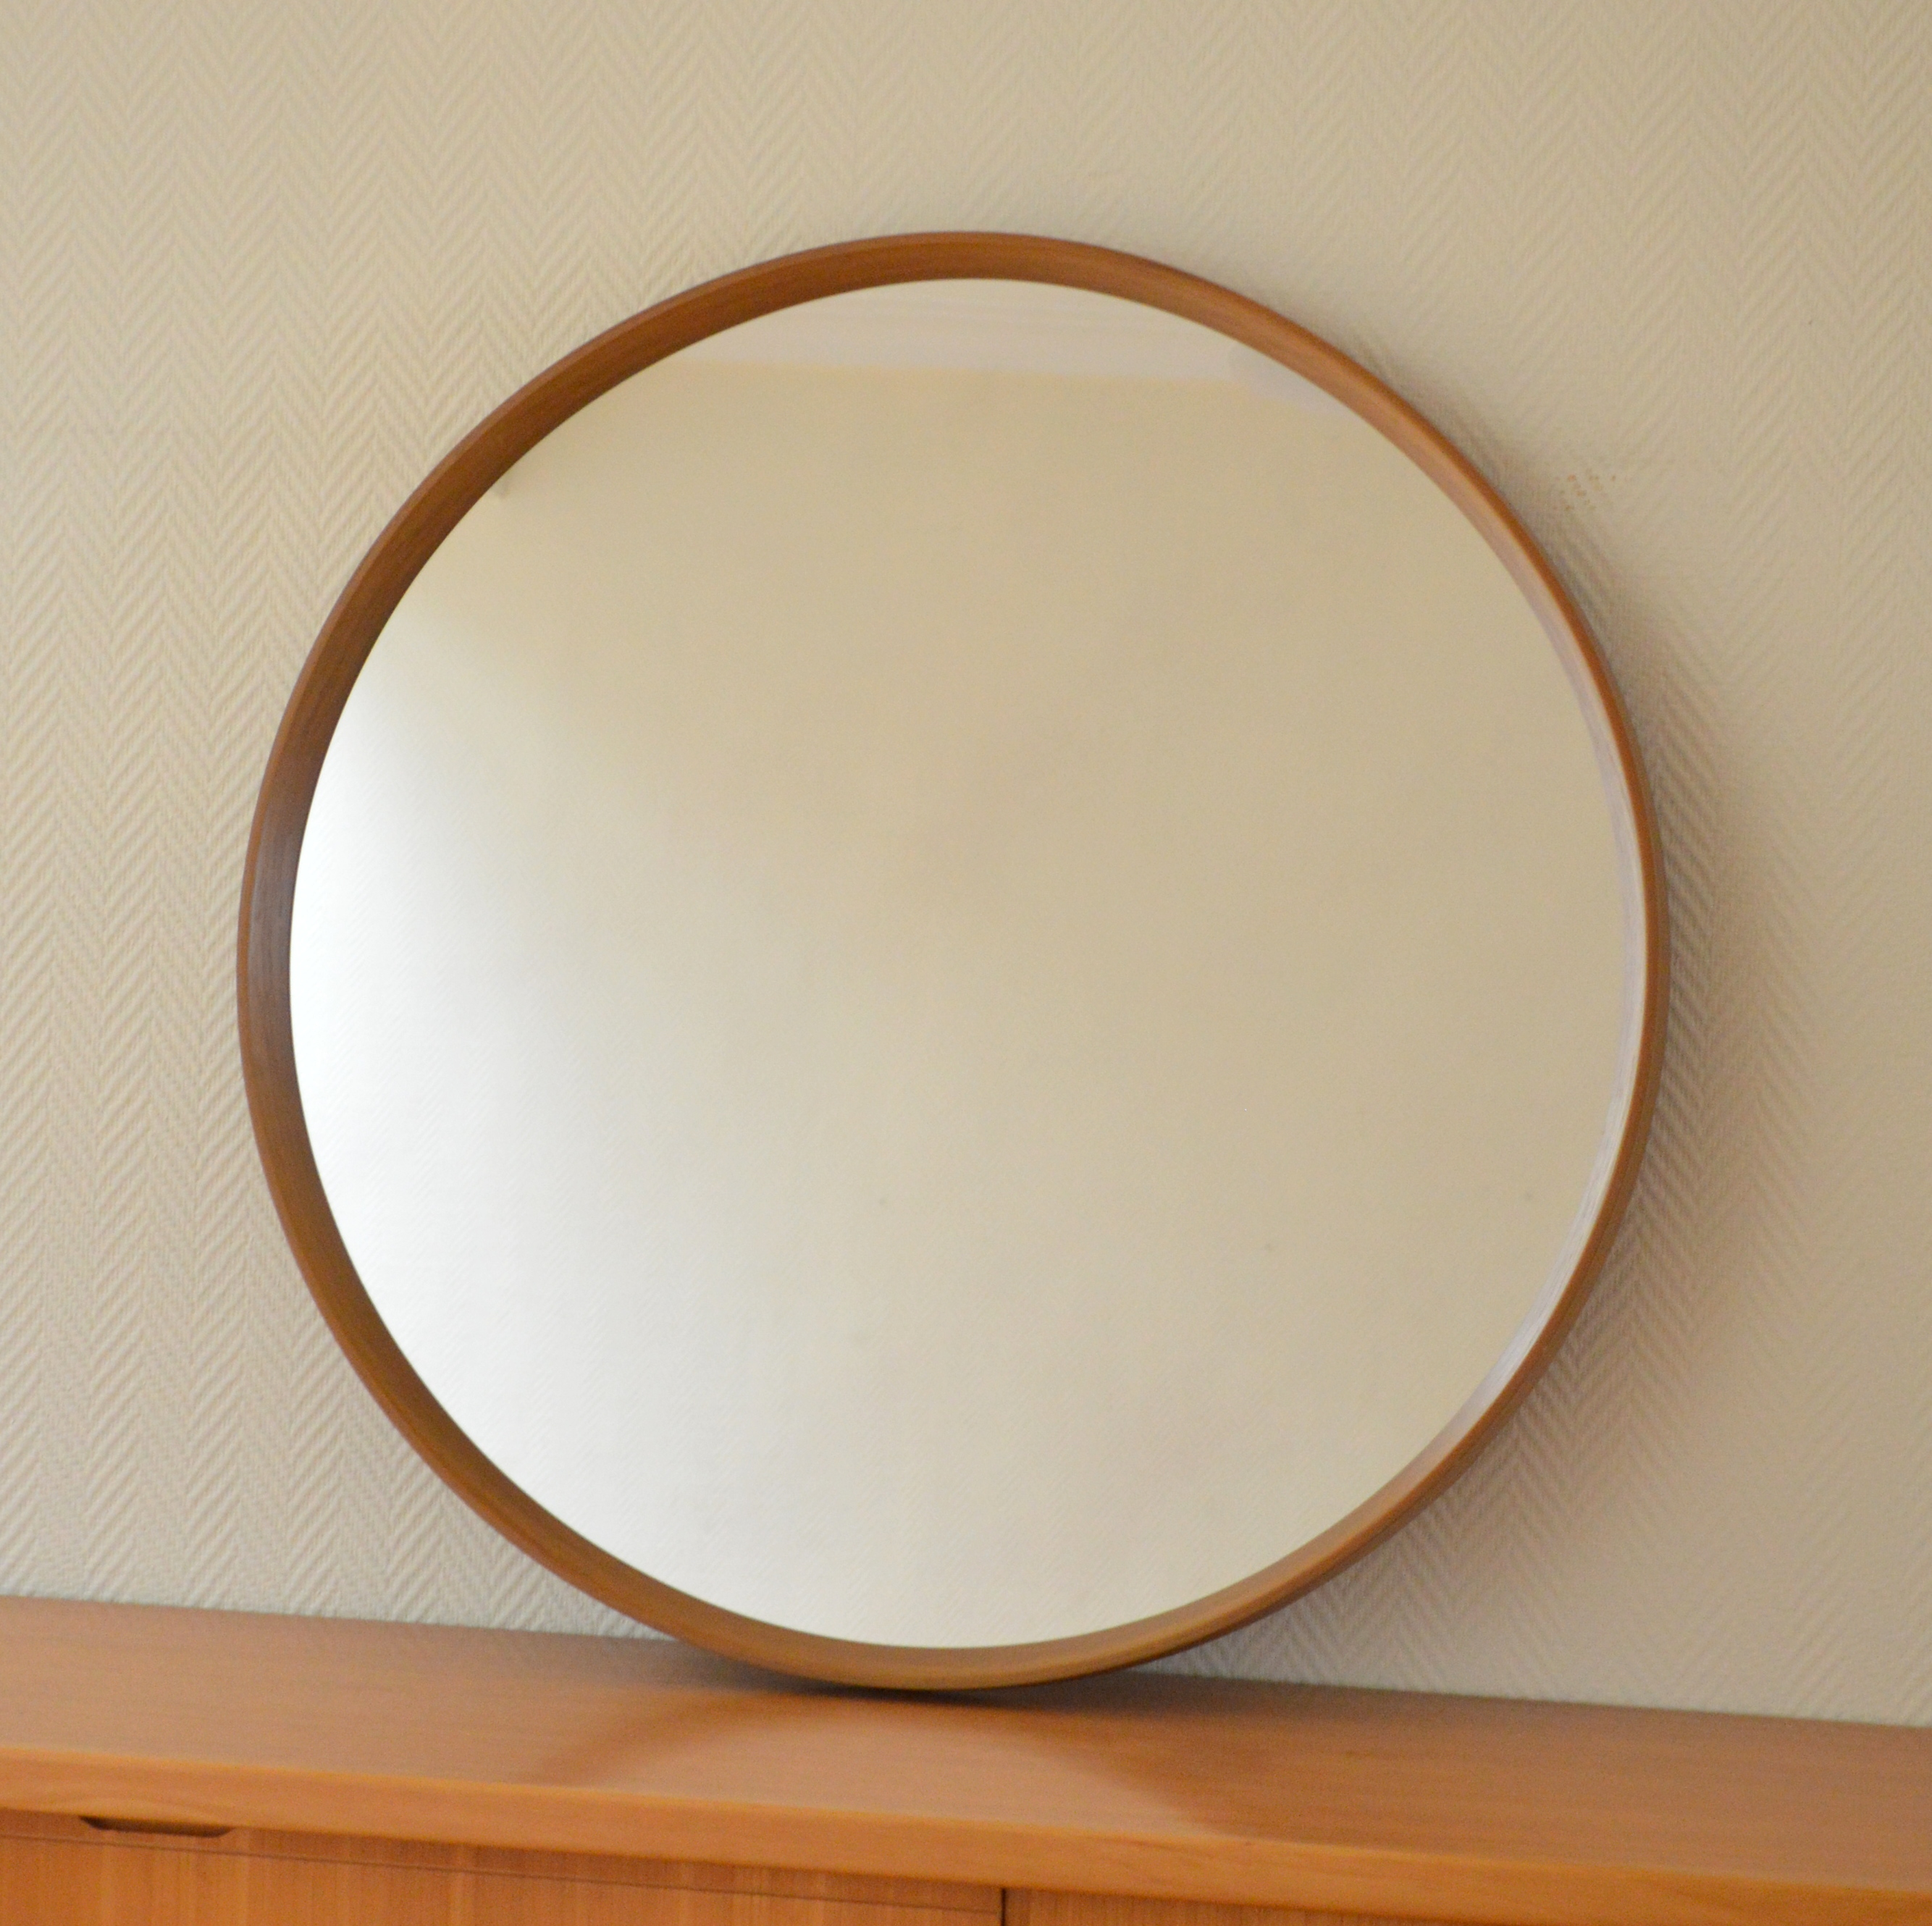 Image gallery miroir rond for Grand miroir antique